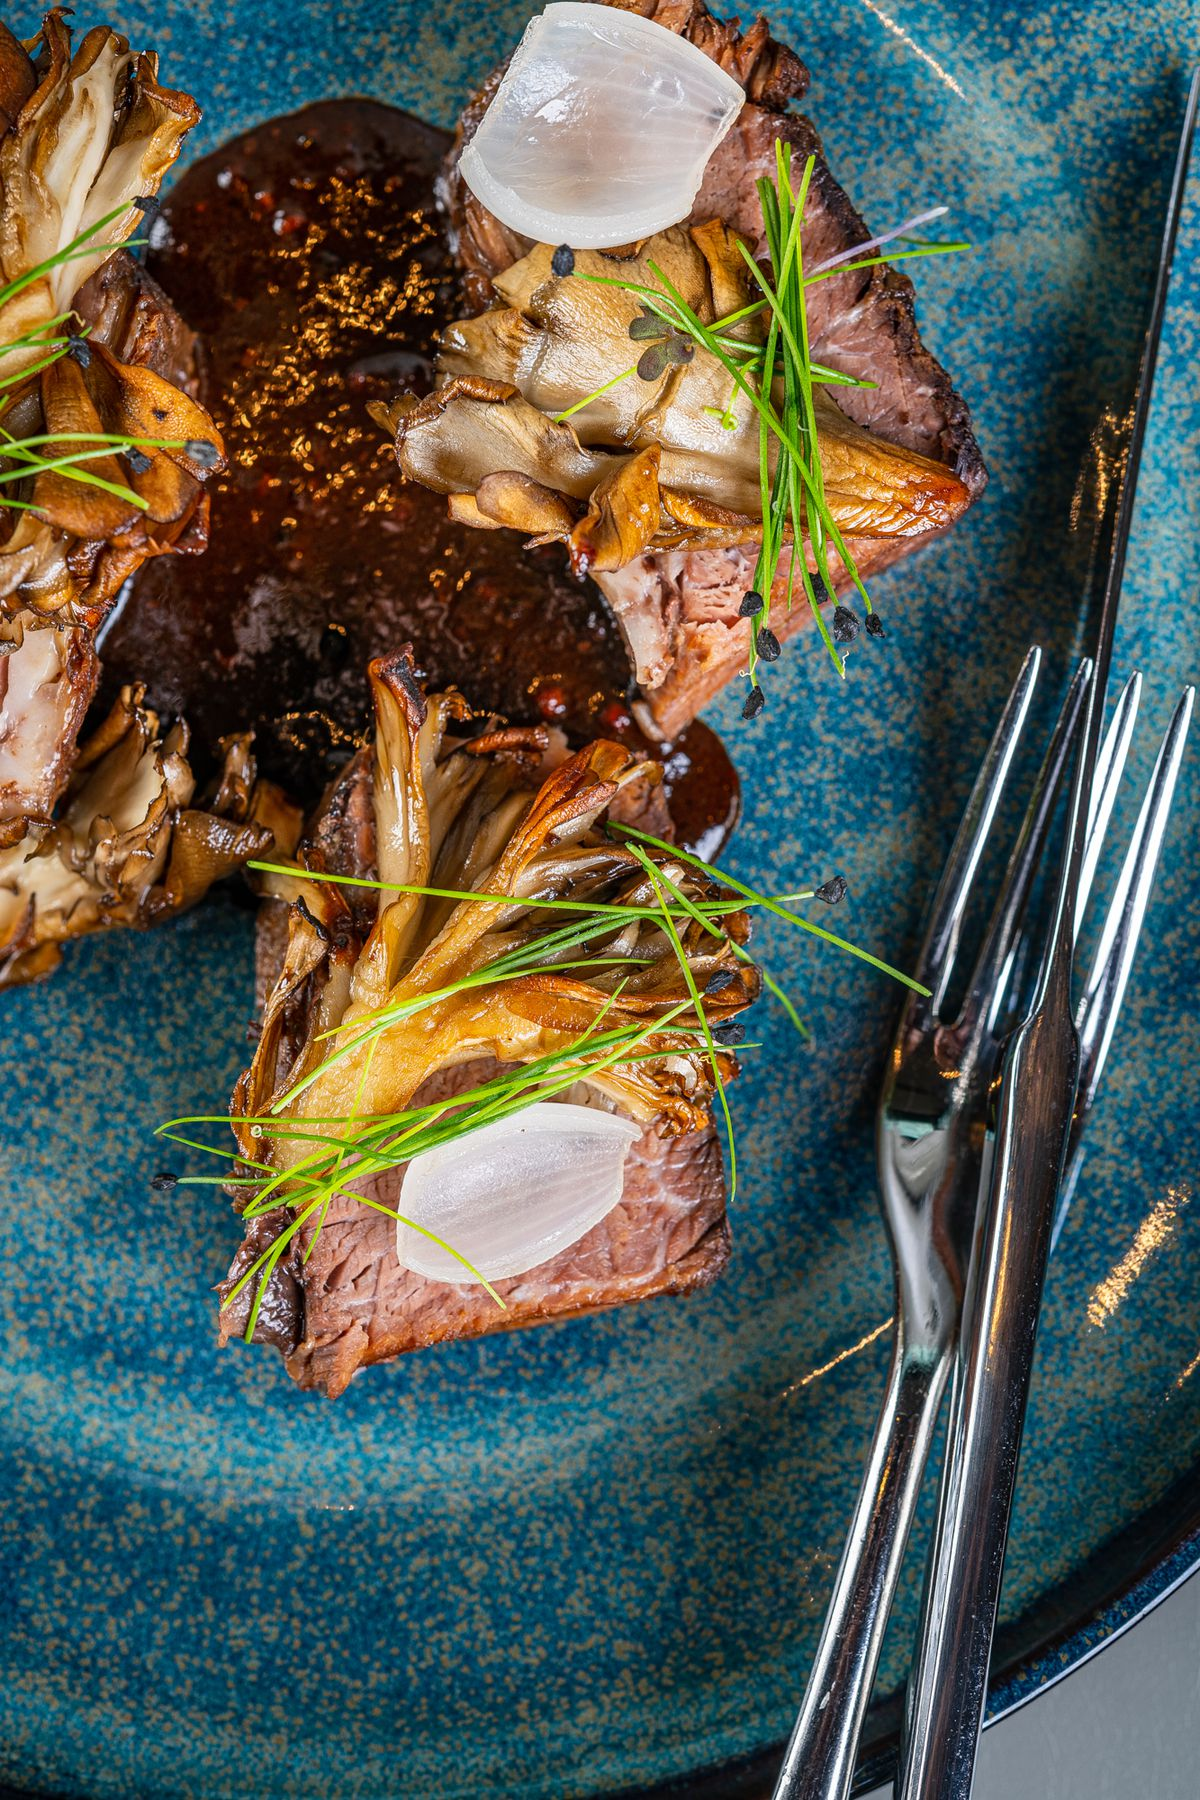 Braised wagyu short ribs come with roasted maitake mushrooms, compressed chives, and cognac-spiked au poivre at Moon Rabbit